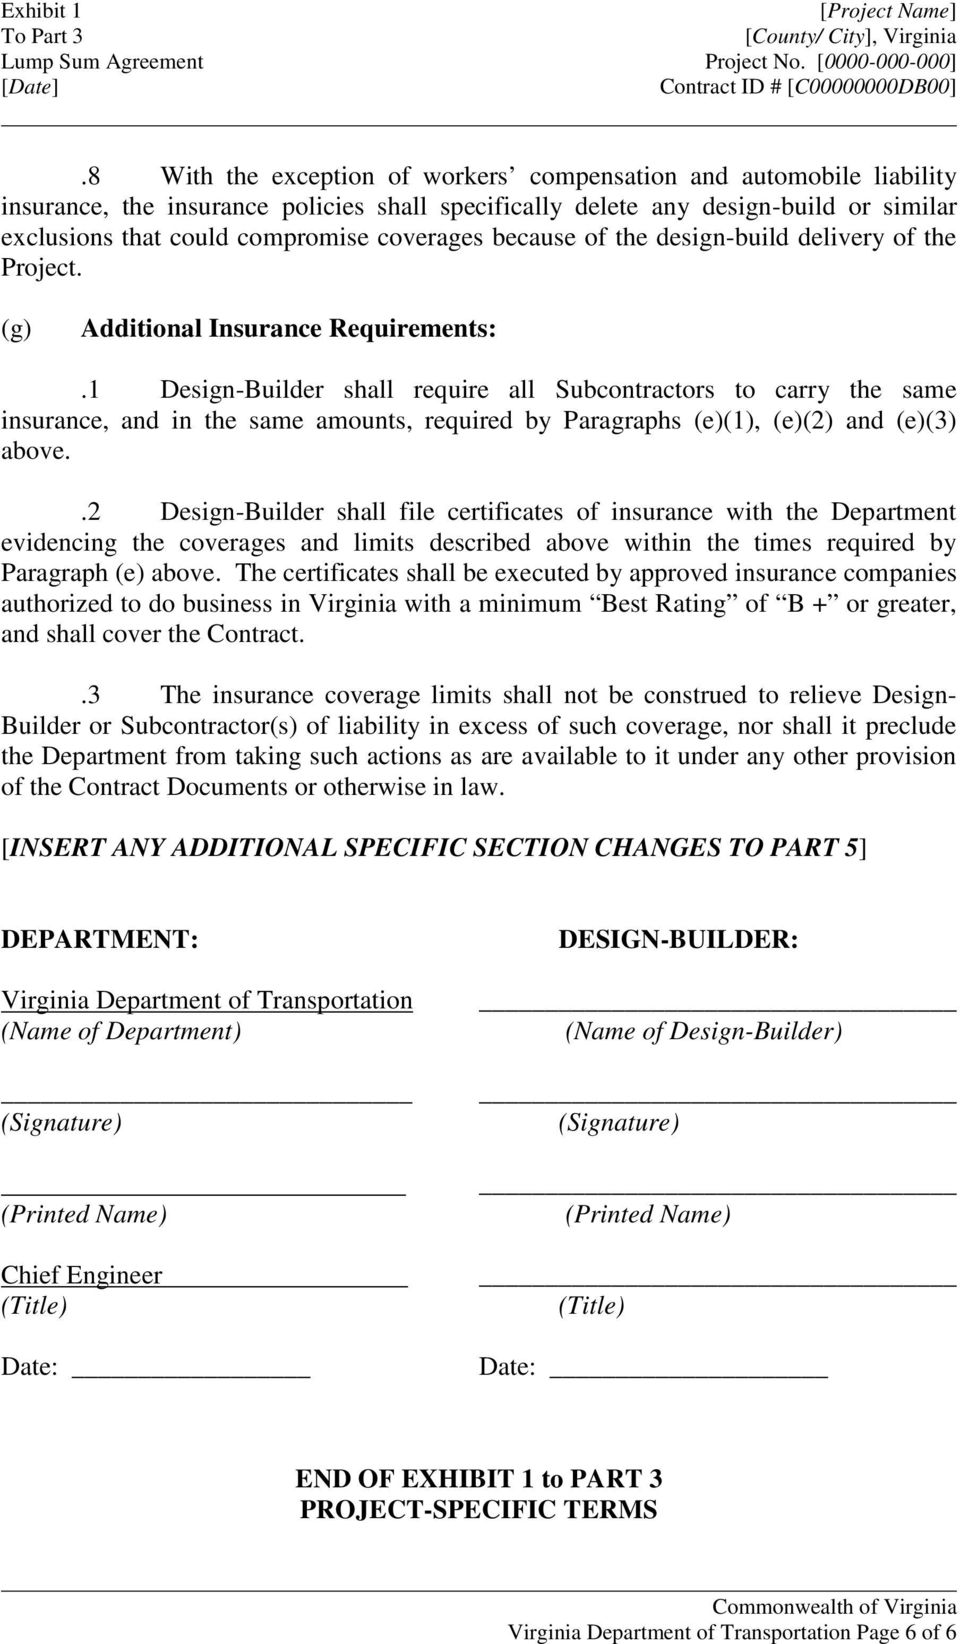 1 Design-Builder shall require all Subcontractors to carry the same insurance, and in the same amounts, required by Paragraphs (e)(1), (e)(2) and (e)(3) above.